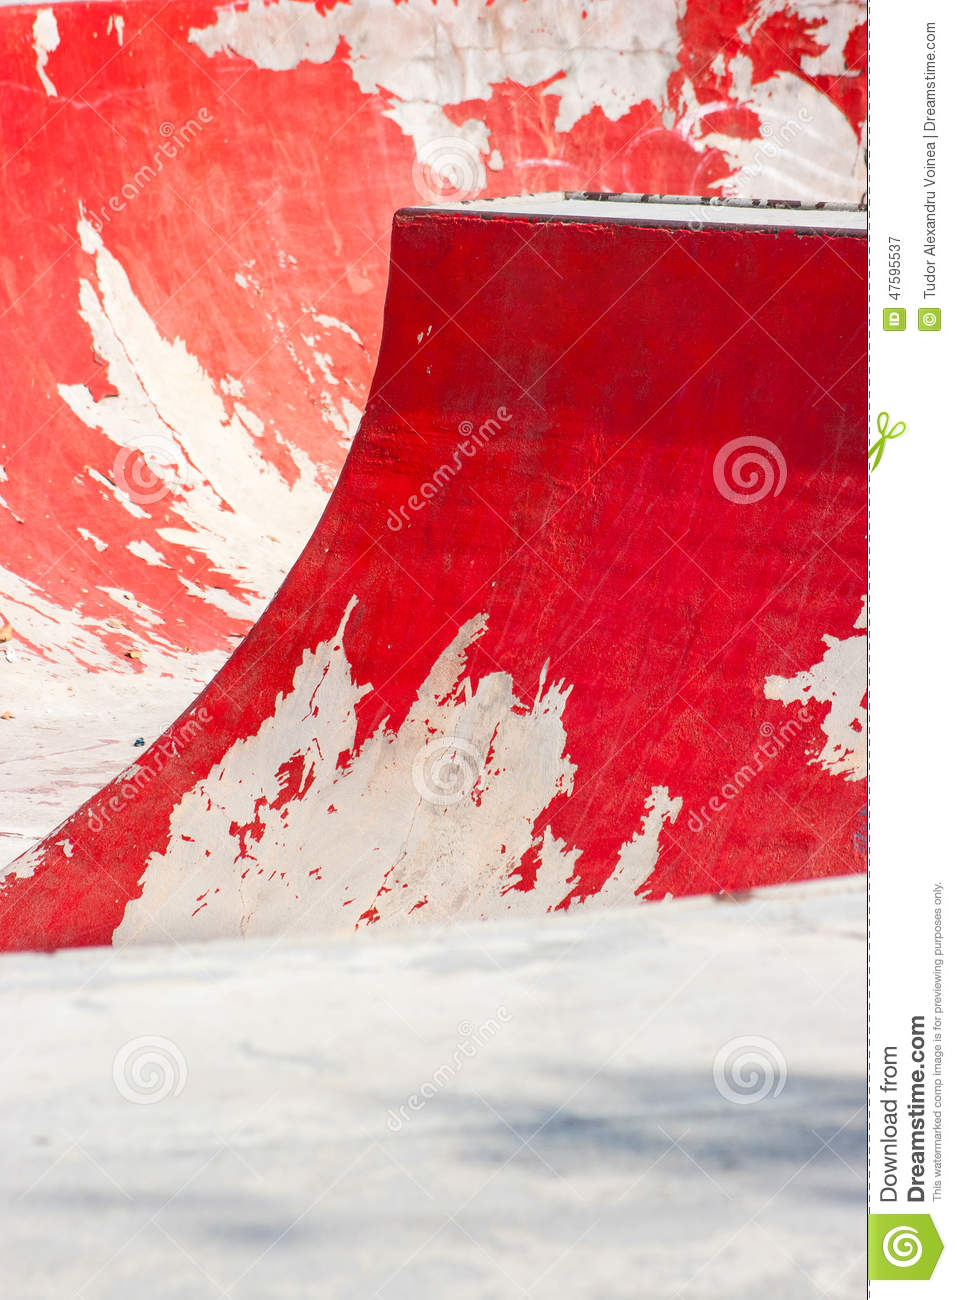 Old Red Skating Ramp With Half Pipe Rail  Stock Image